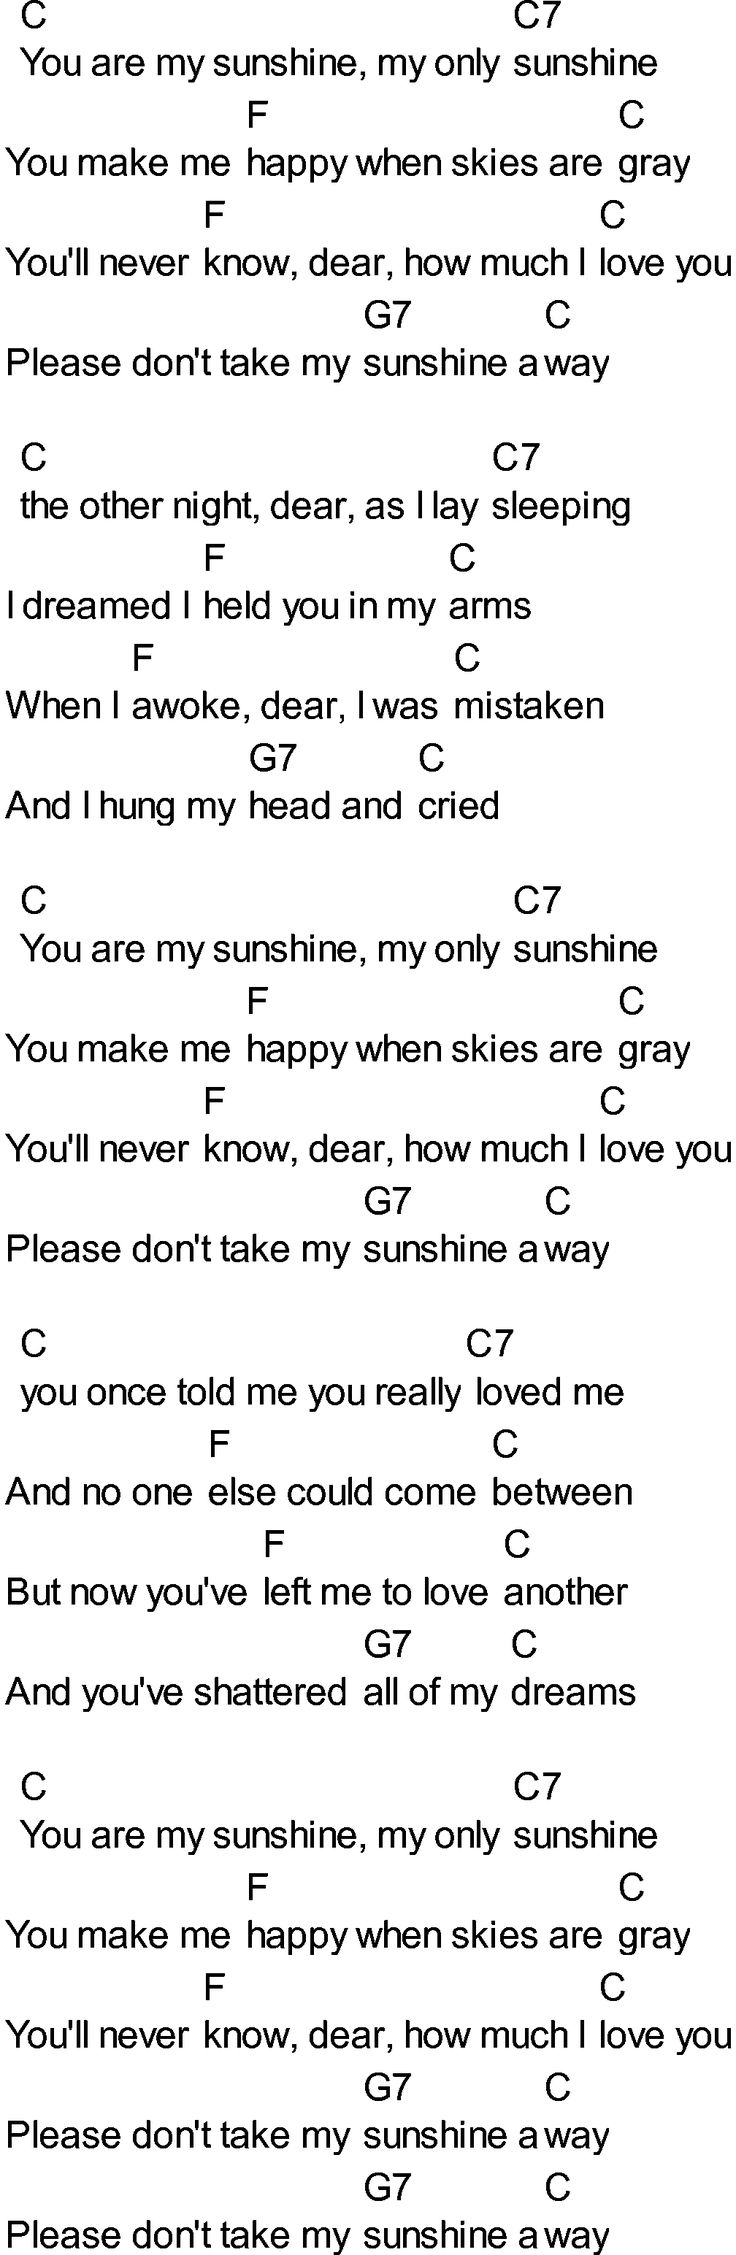 332 best guitar lyrics and chords images on pinterest guitar bluegrass songs with chords you are my sunshine hexwebz Images